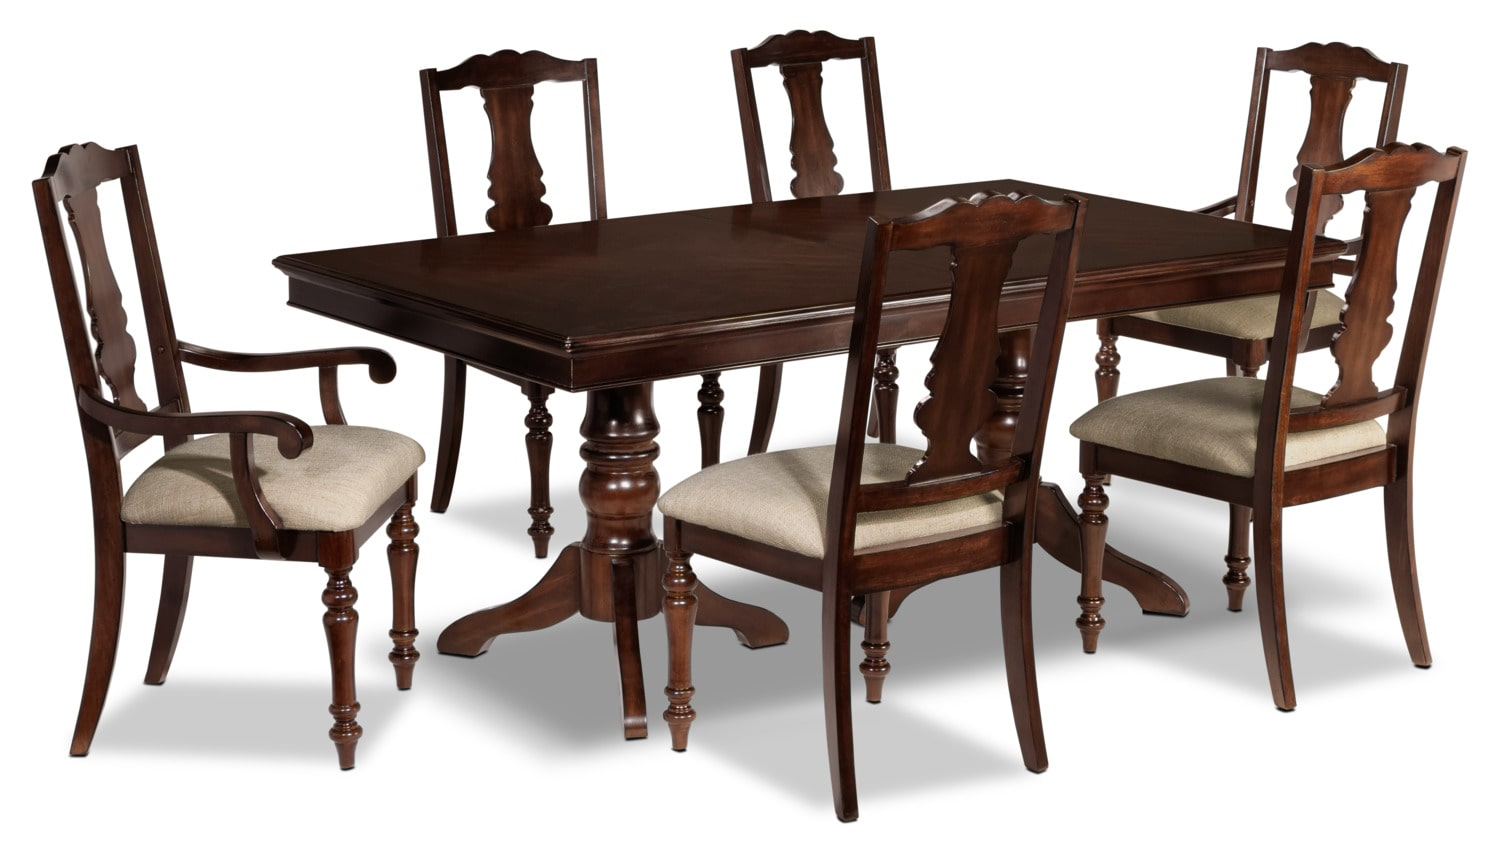 Alice 7 piece dining room set cherry leon 39 s for 7 piece dining room set